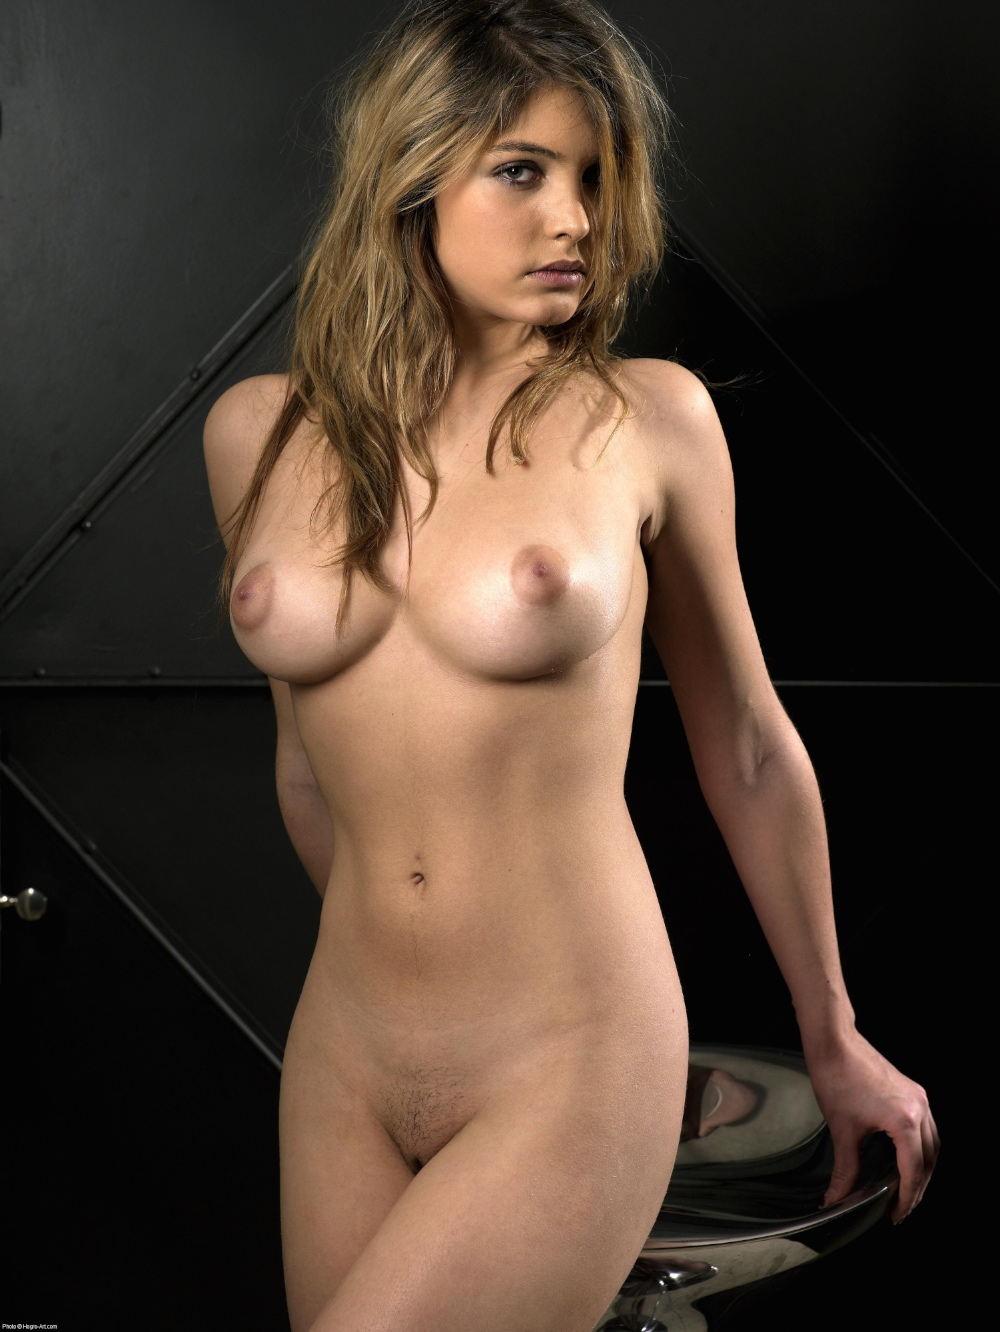 image Sextape d une belle blonde sodomisee par une queue black